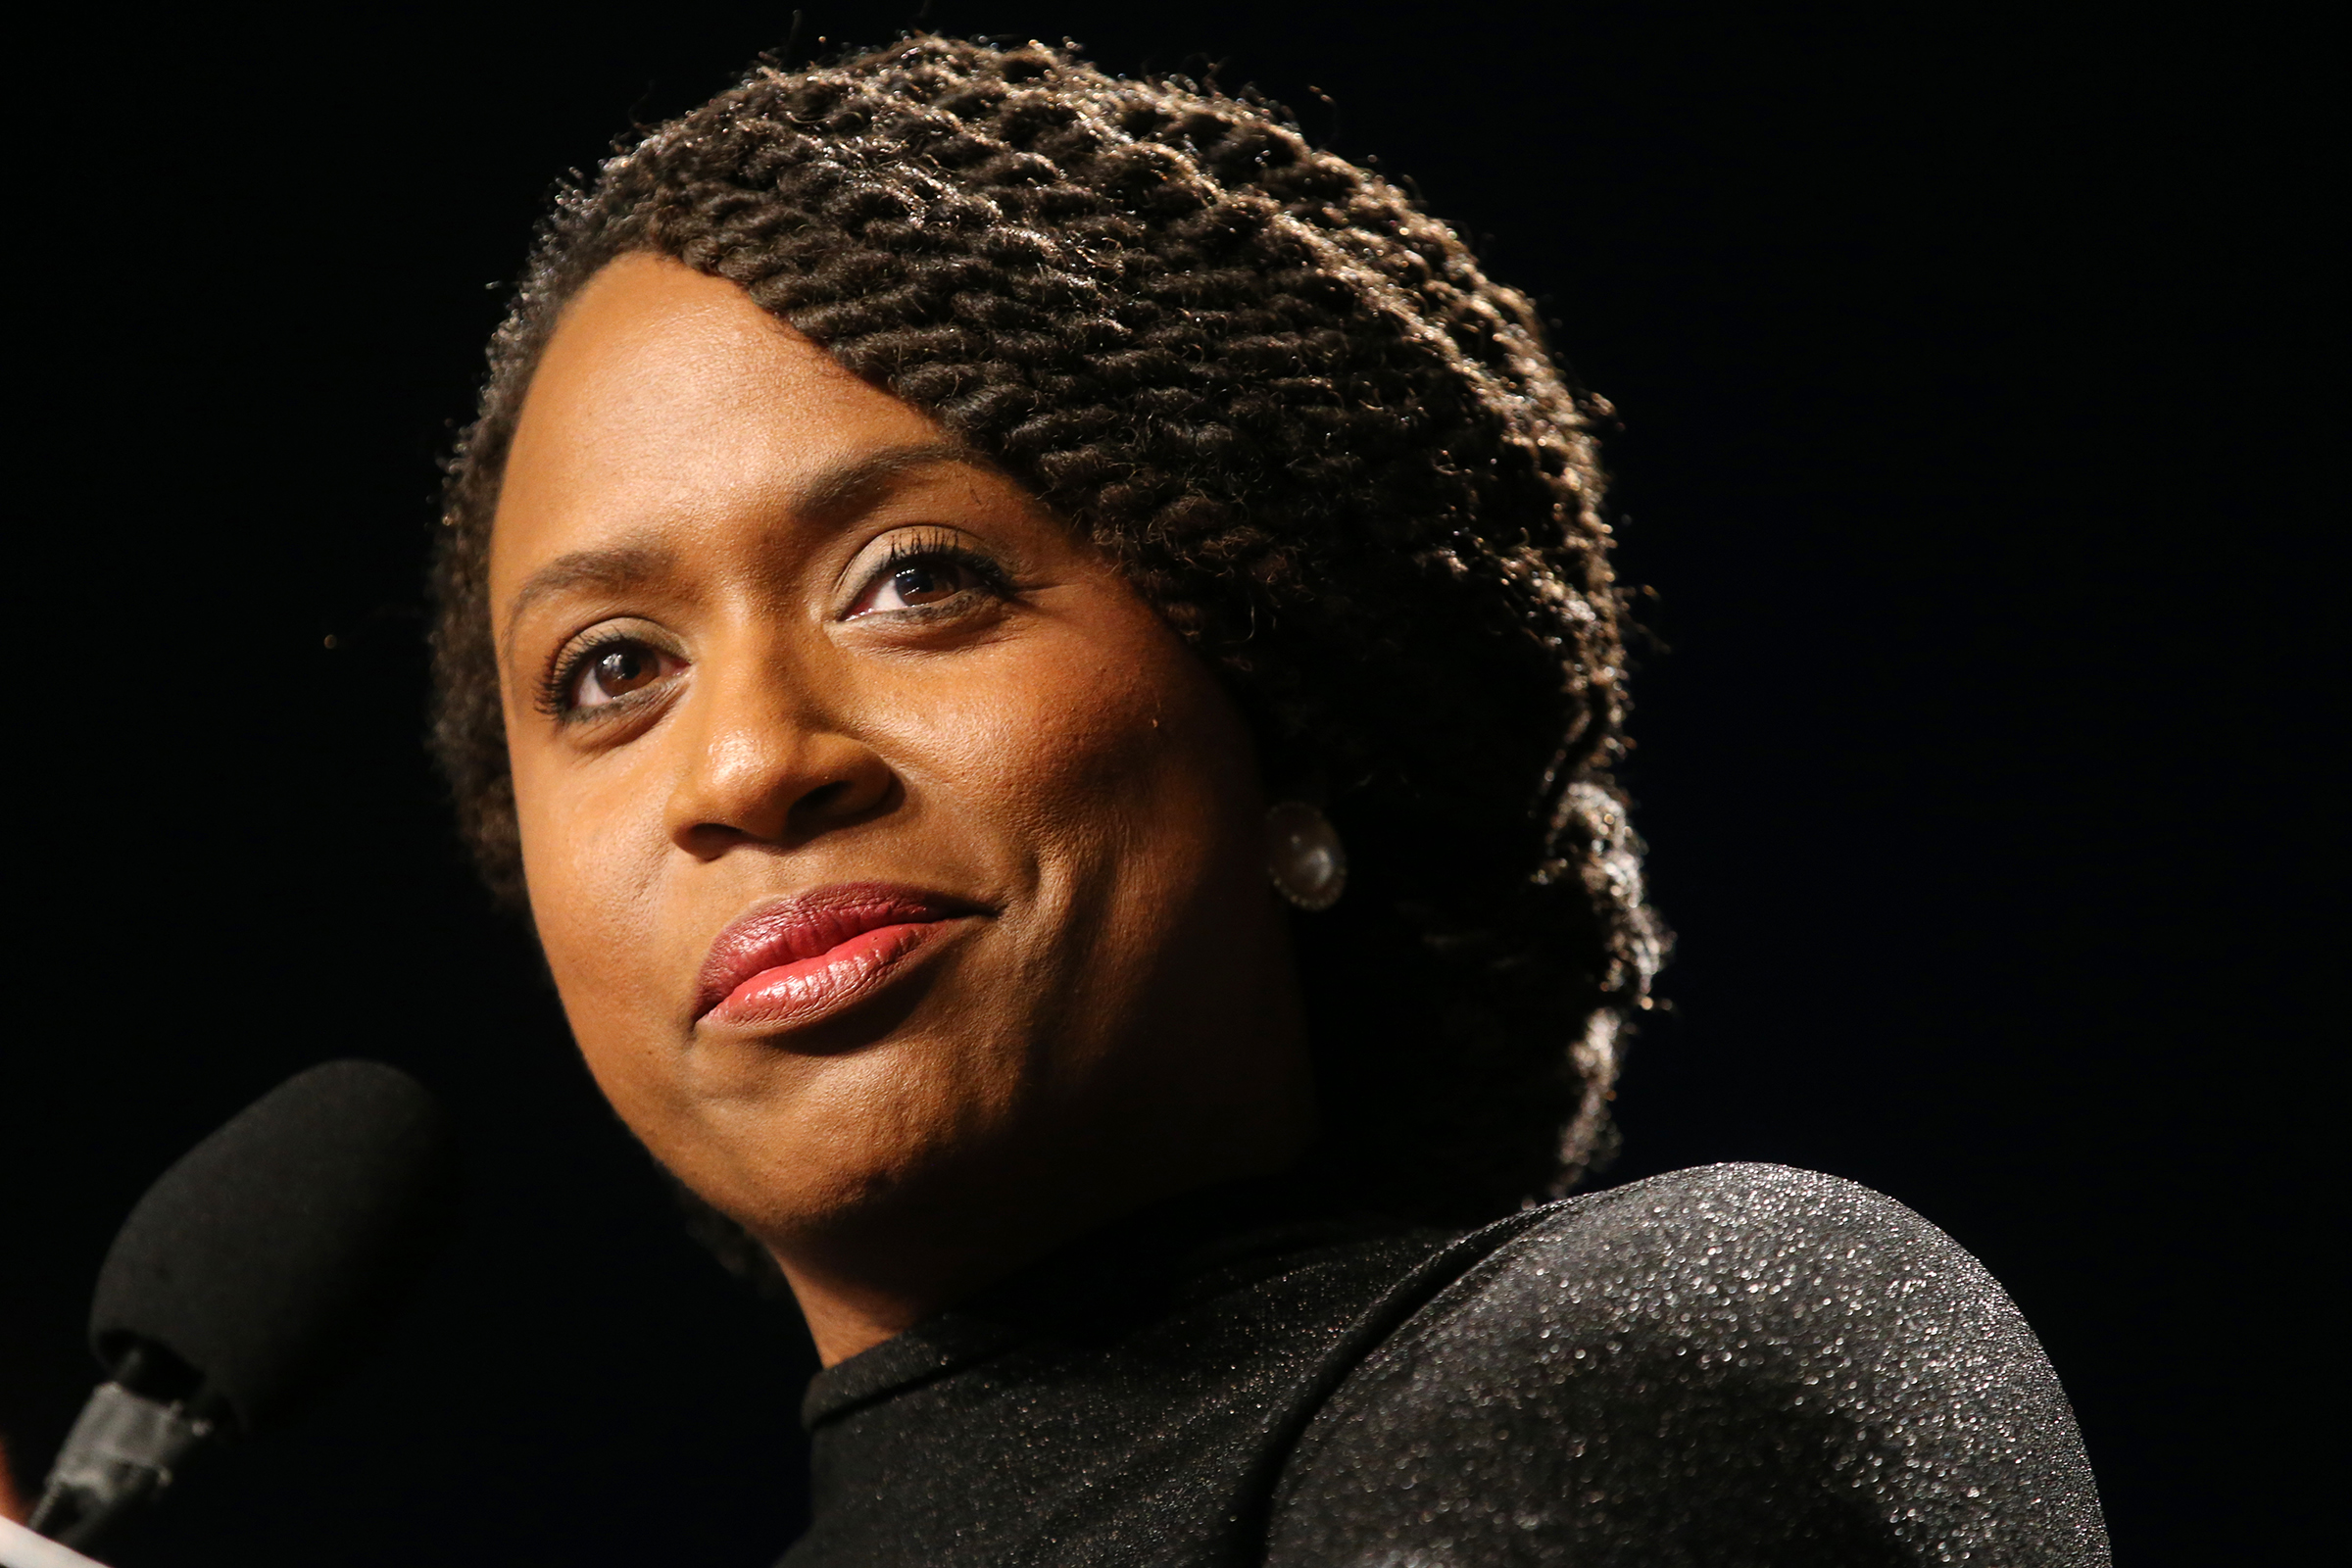 Congresswoman Ayanna Pressley addresses the crowd during the 49th Annual Martin Luther King Jr. Memorial Breakfast at the Boston Convention and Exhibition Center in Boston on Jan. 21, 2019.